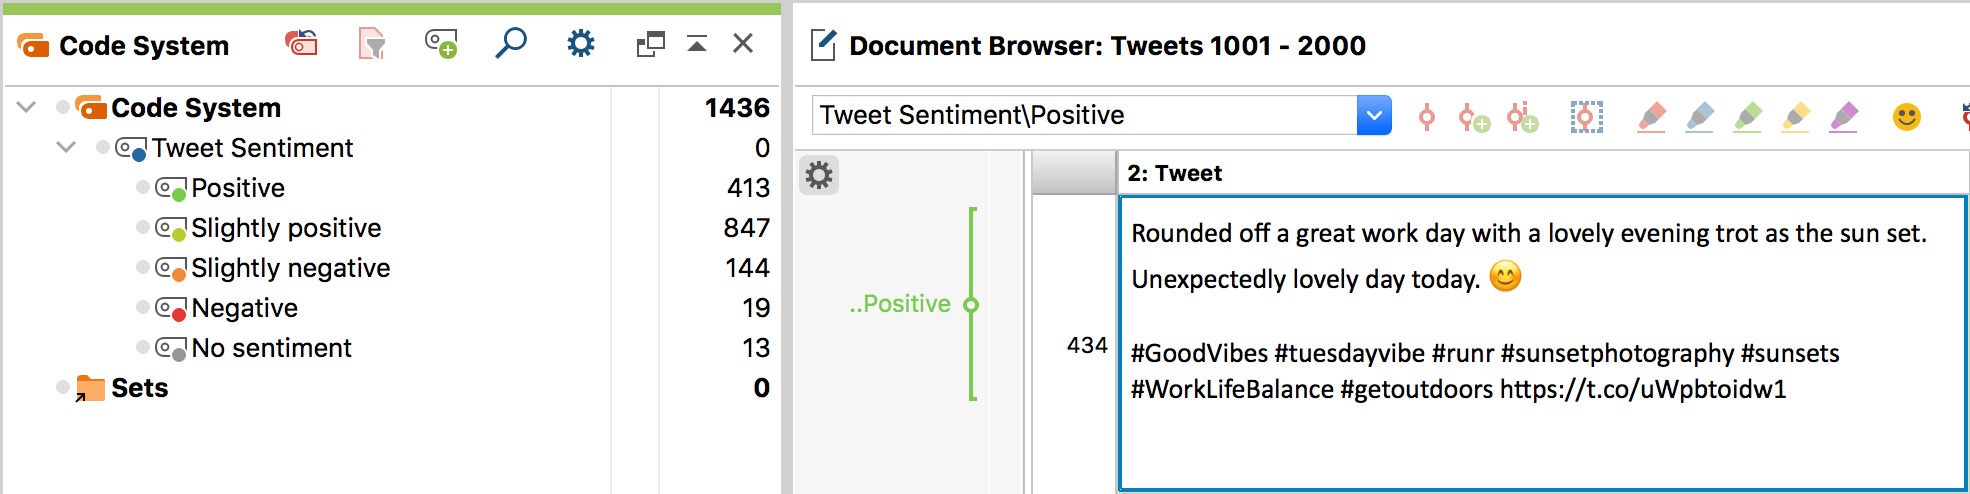 Sentiment codes in the 'Code System' (left); Coded tweet in the 'Document Browser' (right)